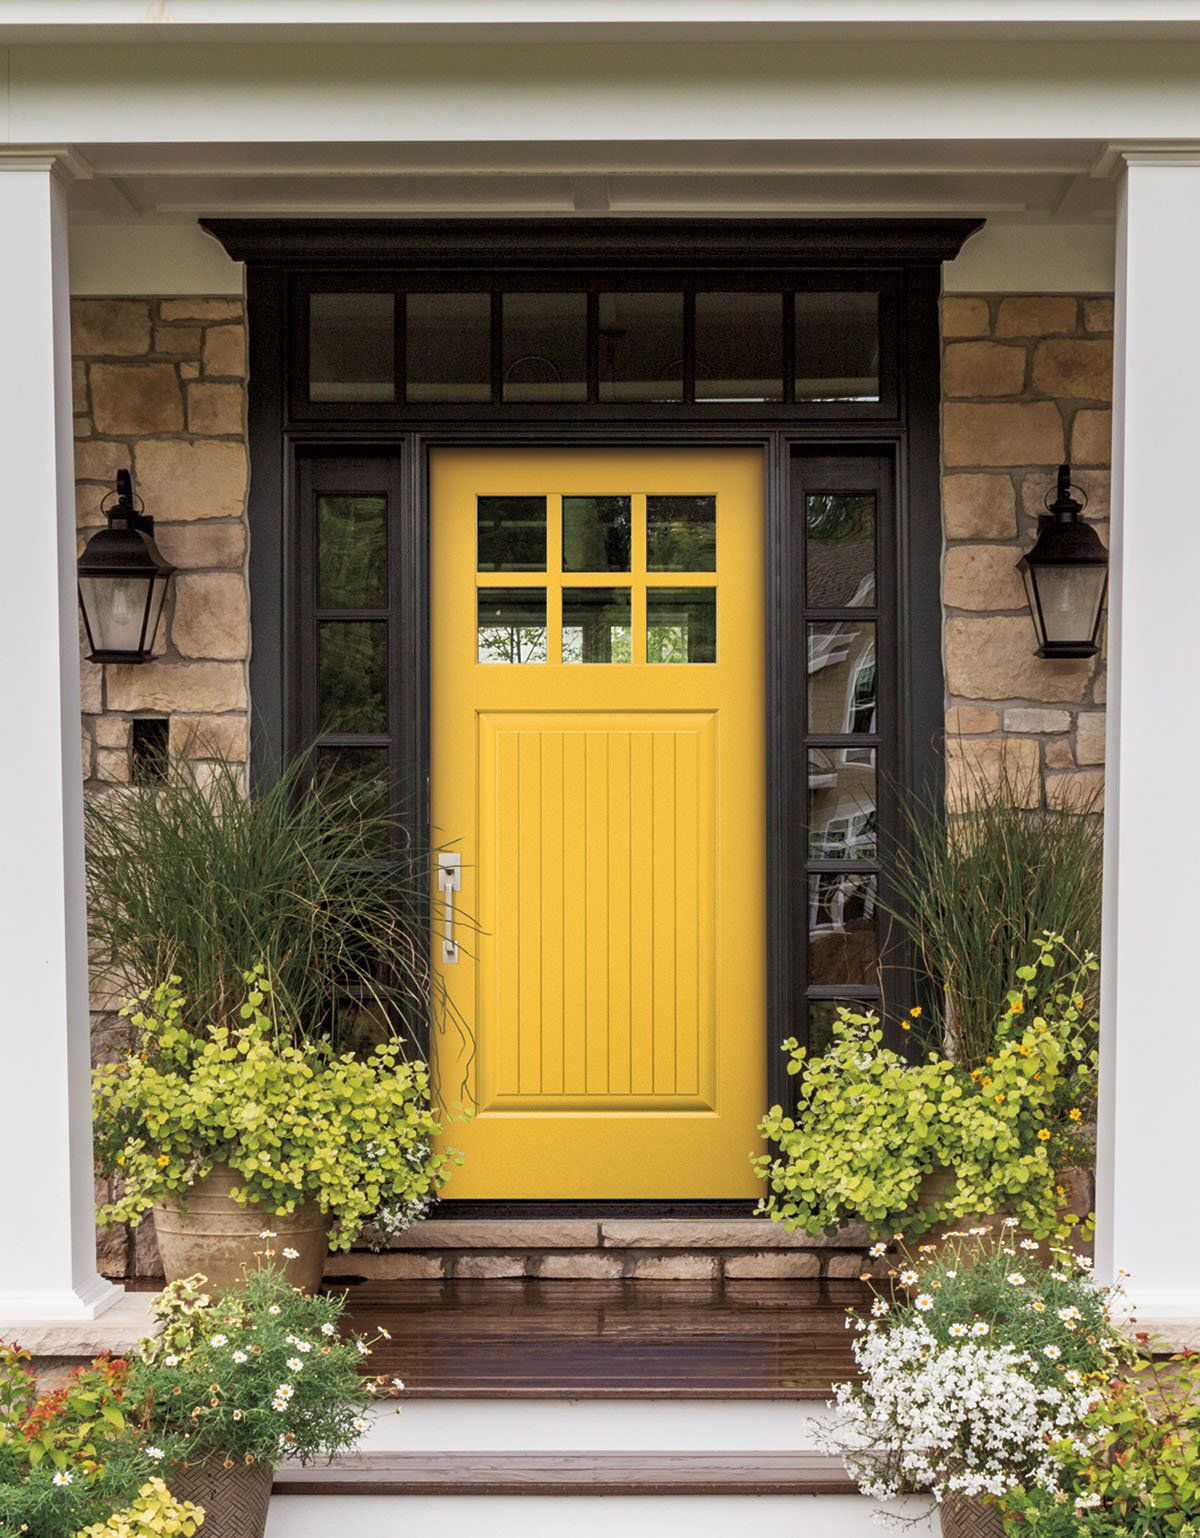 Exceptional Welcome Home: A DIY Guide To Repainting Your Front Door